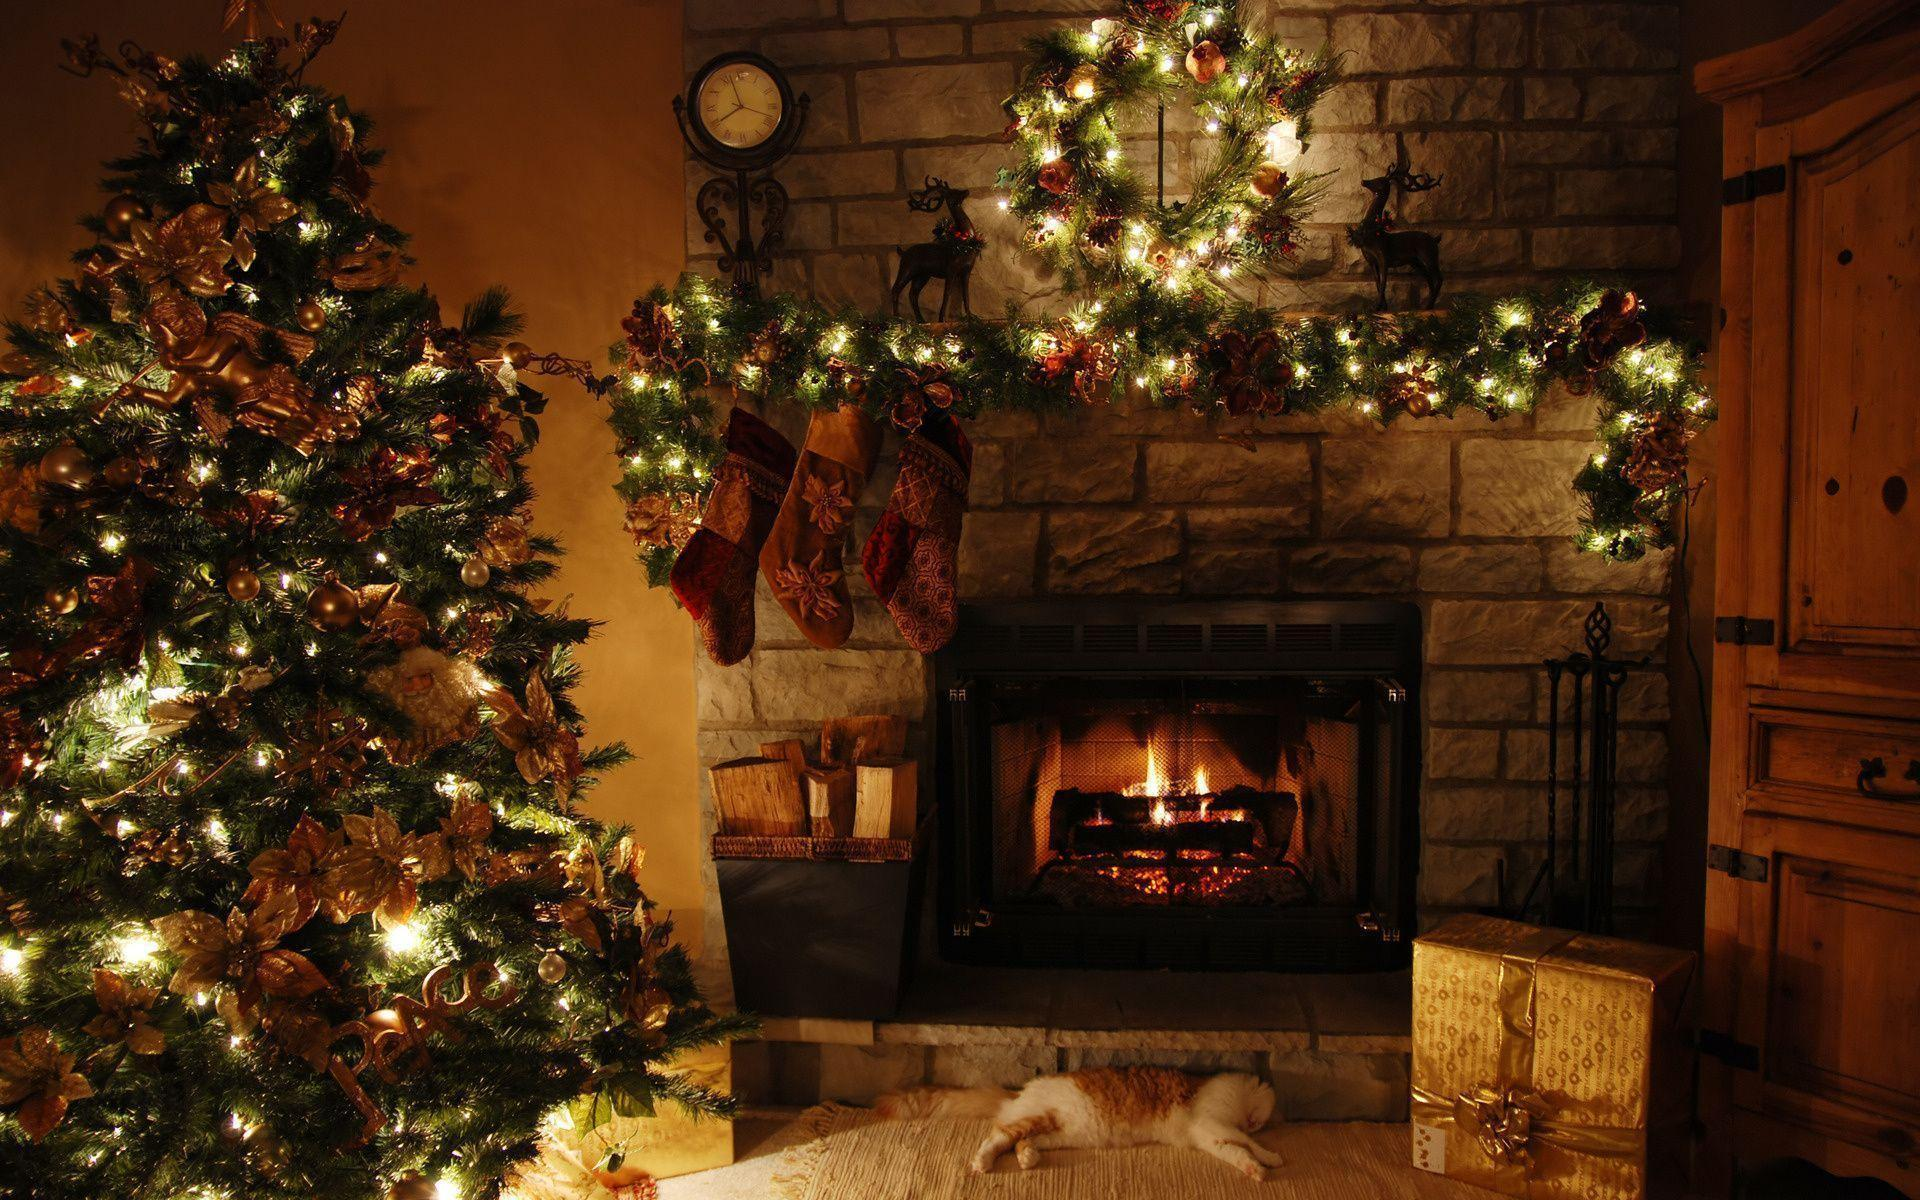 Xmas Stuff For > Christmas Fireplace Scene Wallpapers